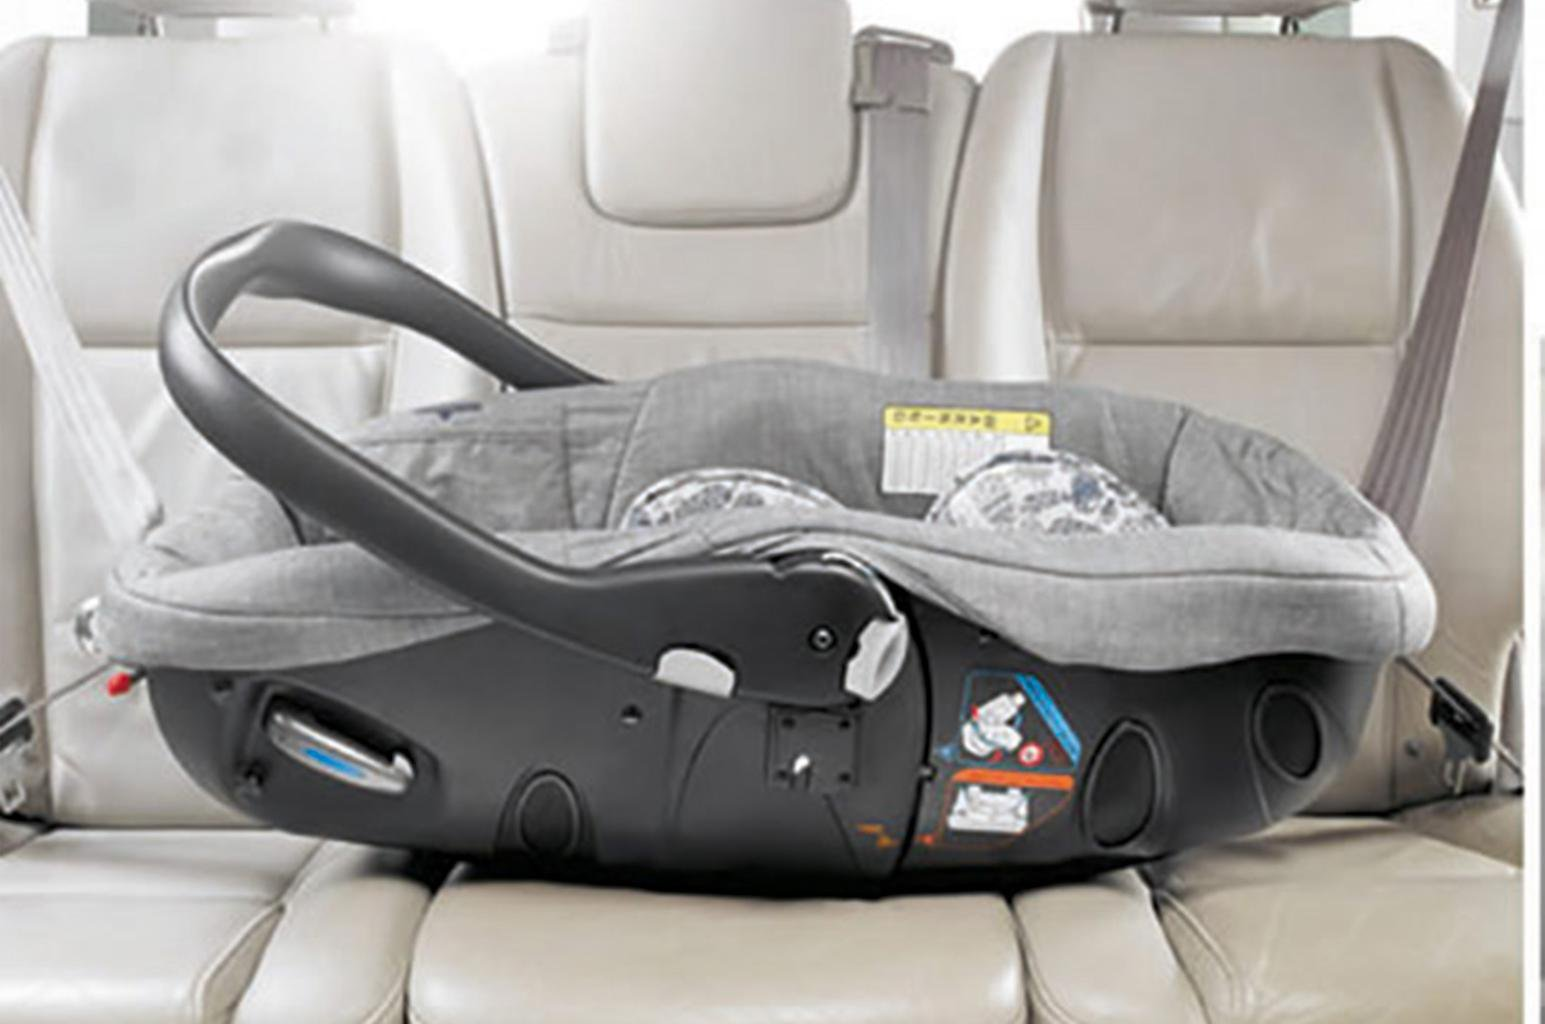 Child car seats: the dangers for newborn babies